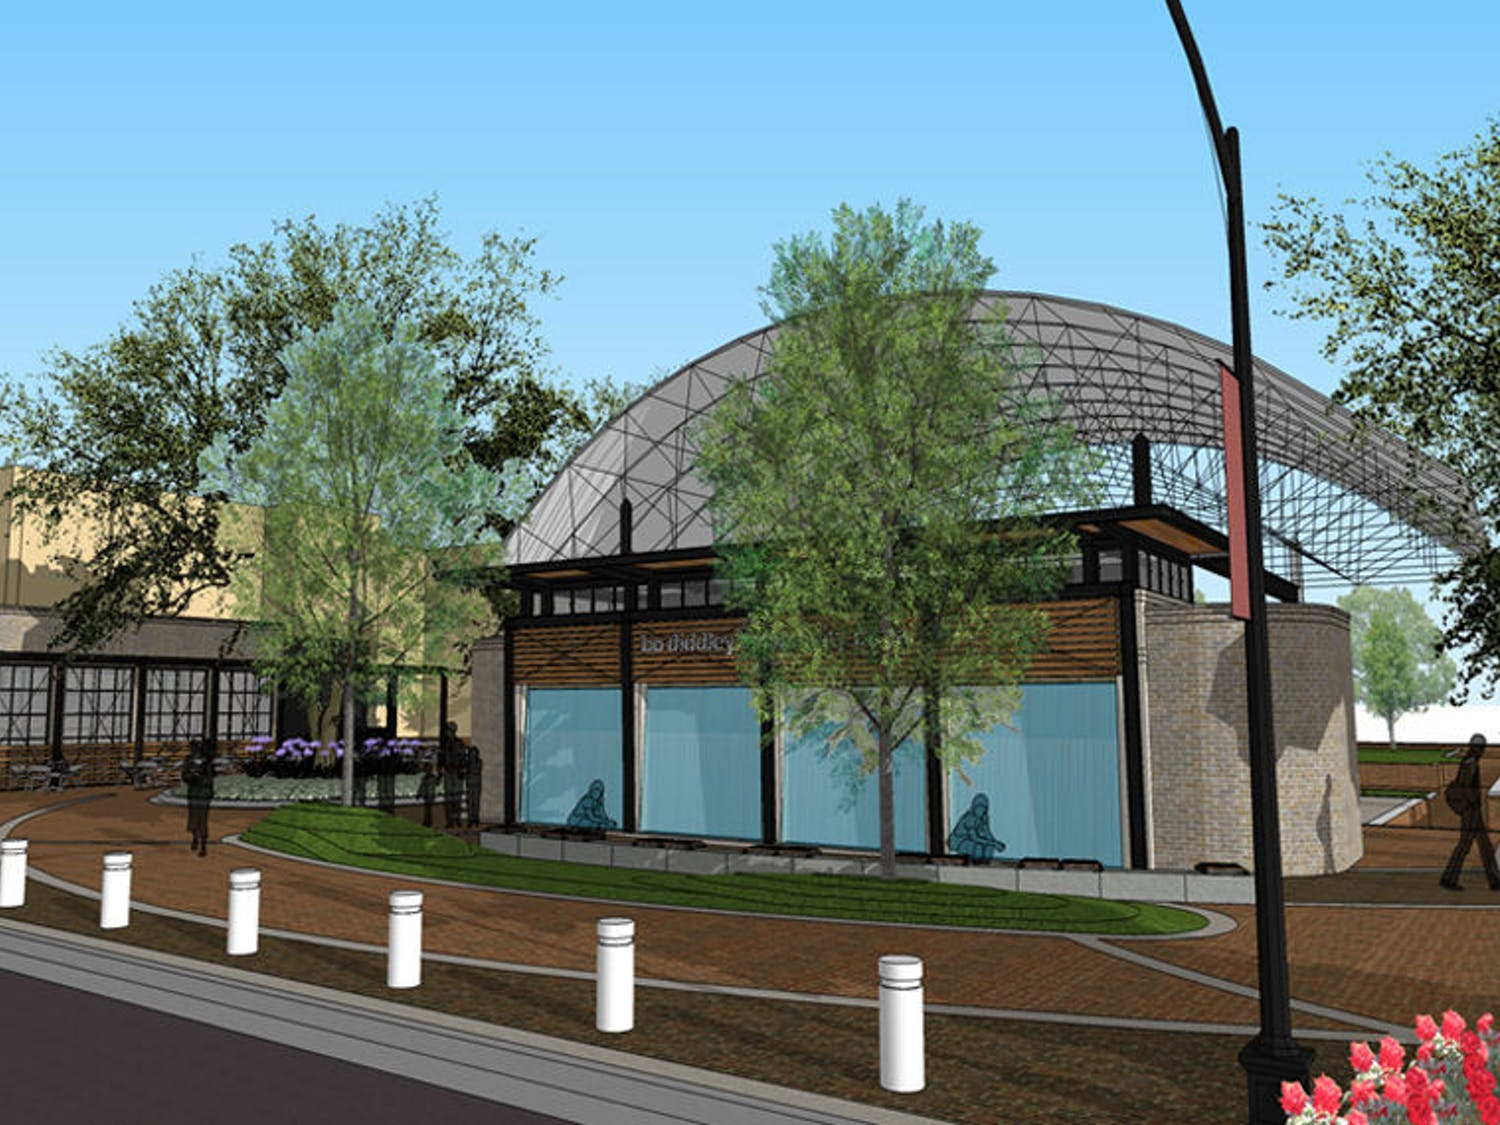 Above is a rendering of the Bo Diddley Community Plaza's planned renovation, which will include a new cafe, information kiosk, green room and water wall feature. It will close for renovations in March.